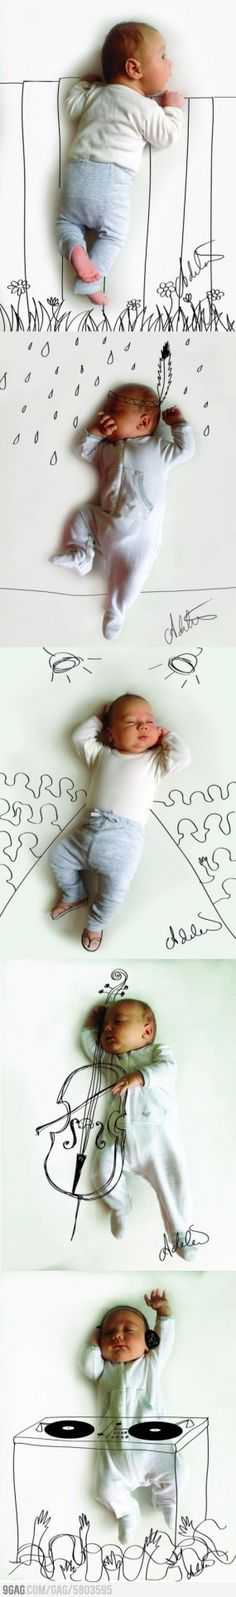 Draw around baby ideas Shared by Vivikene